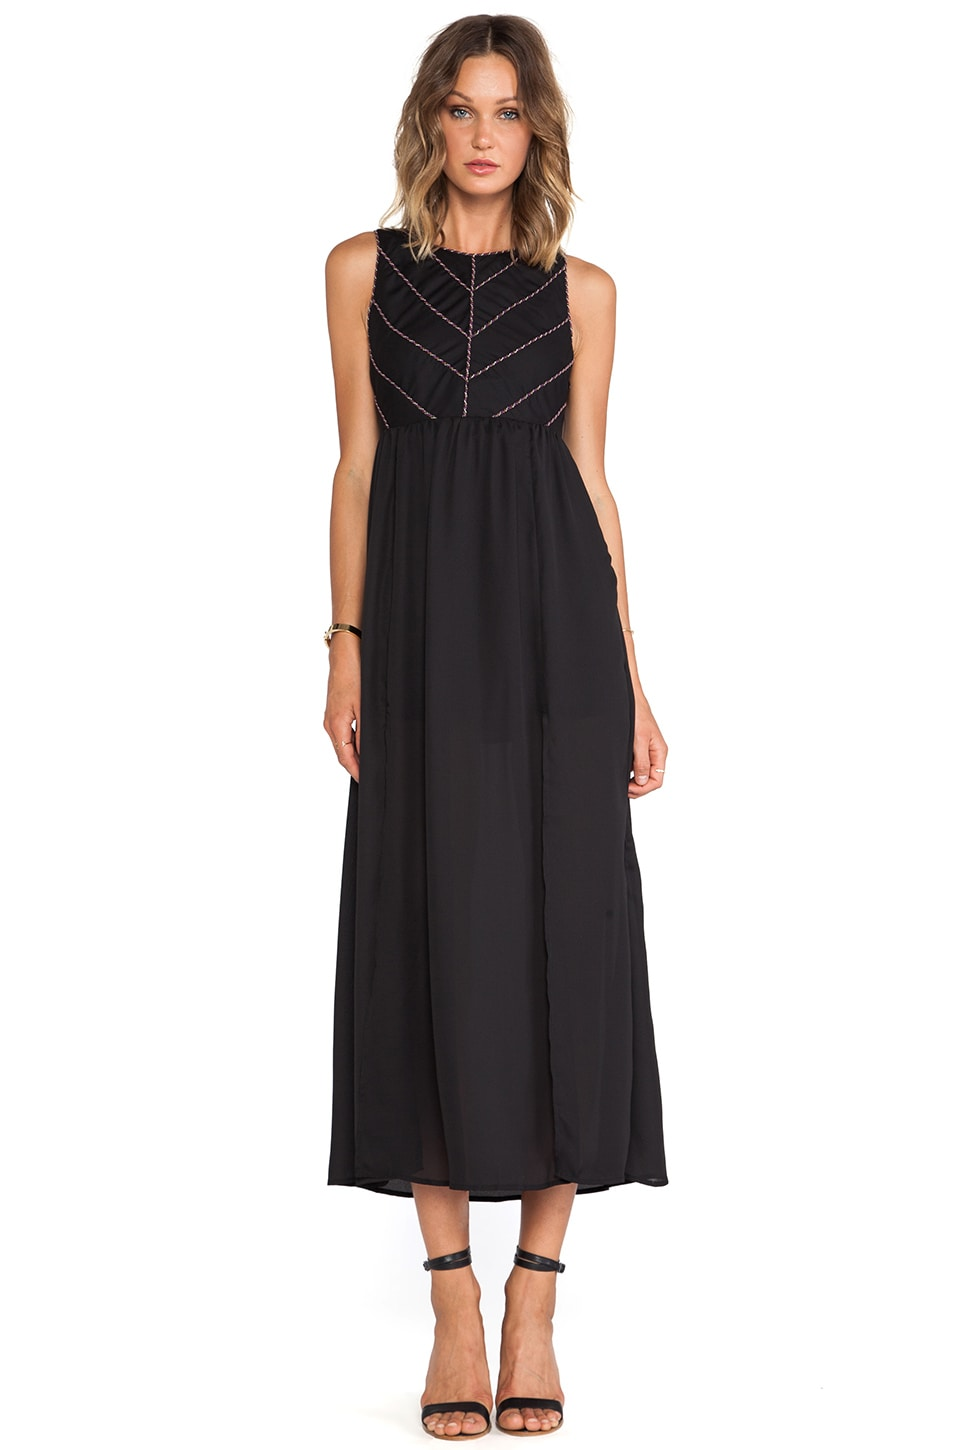 Ladakh Emblaze Maxi in Black